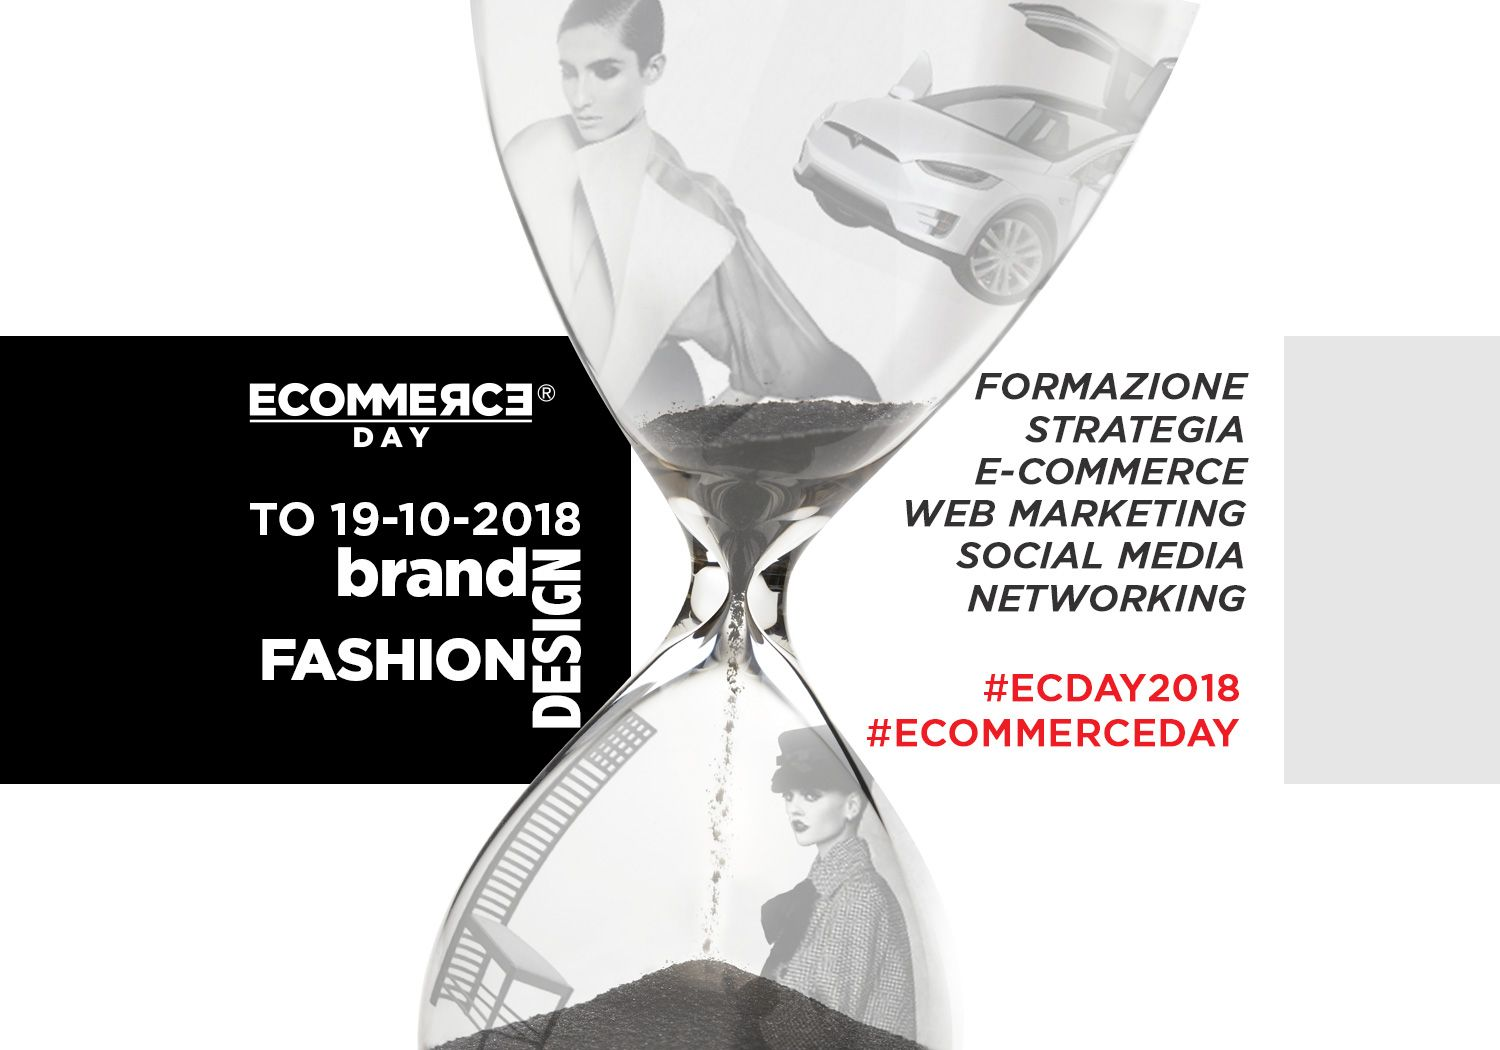 Ecommerce Day 2018: formazione ecommerce e digital transformation